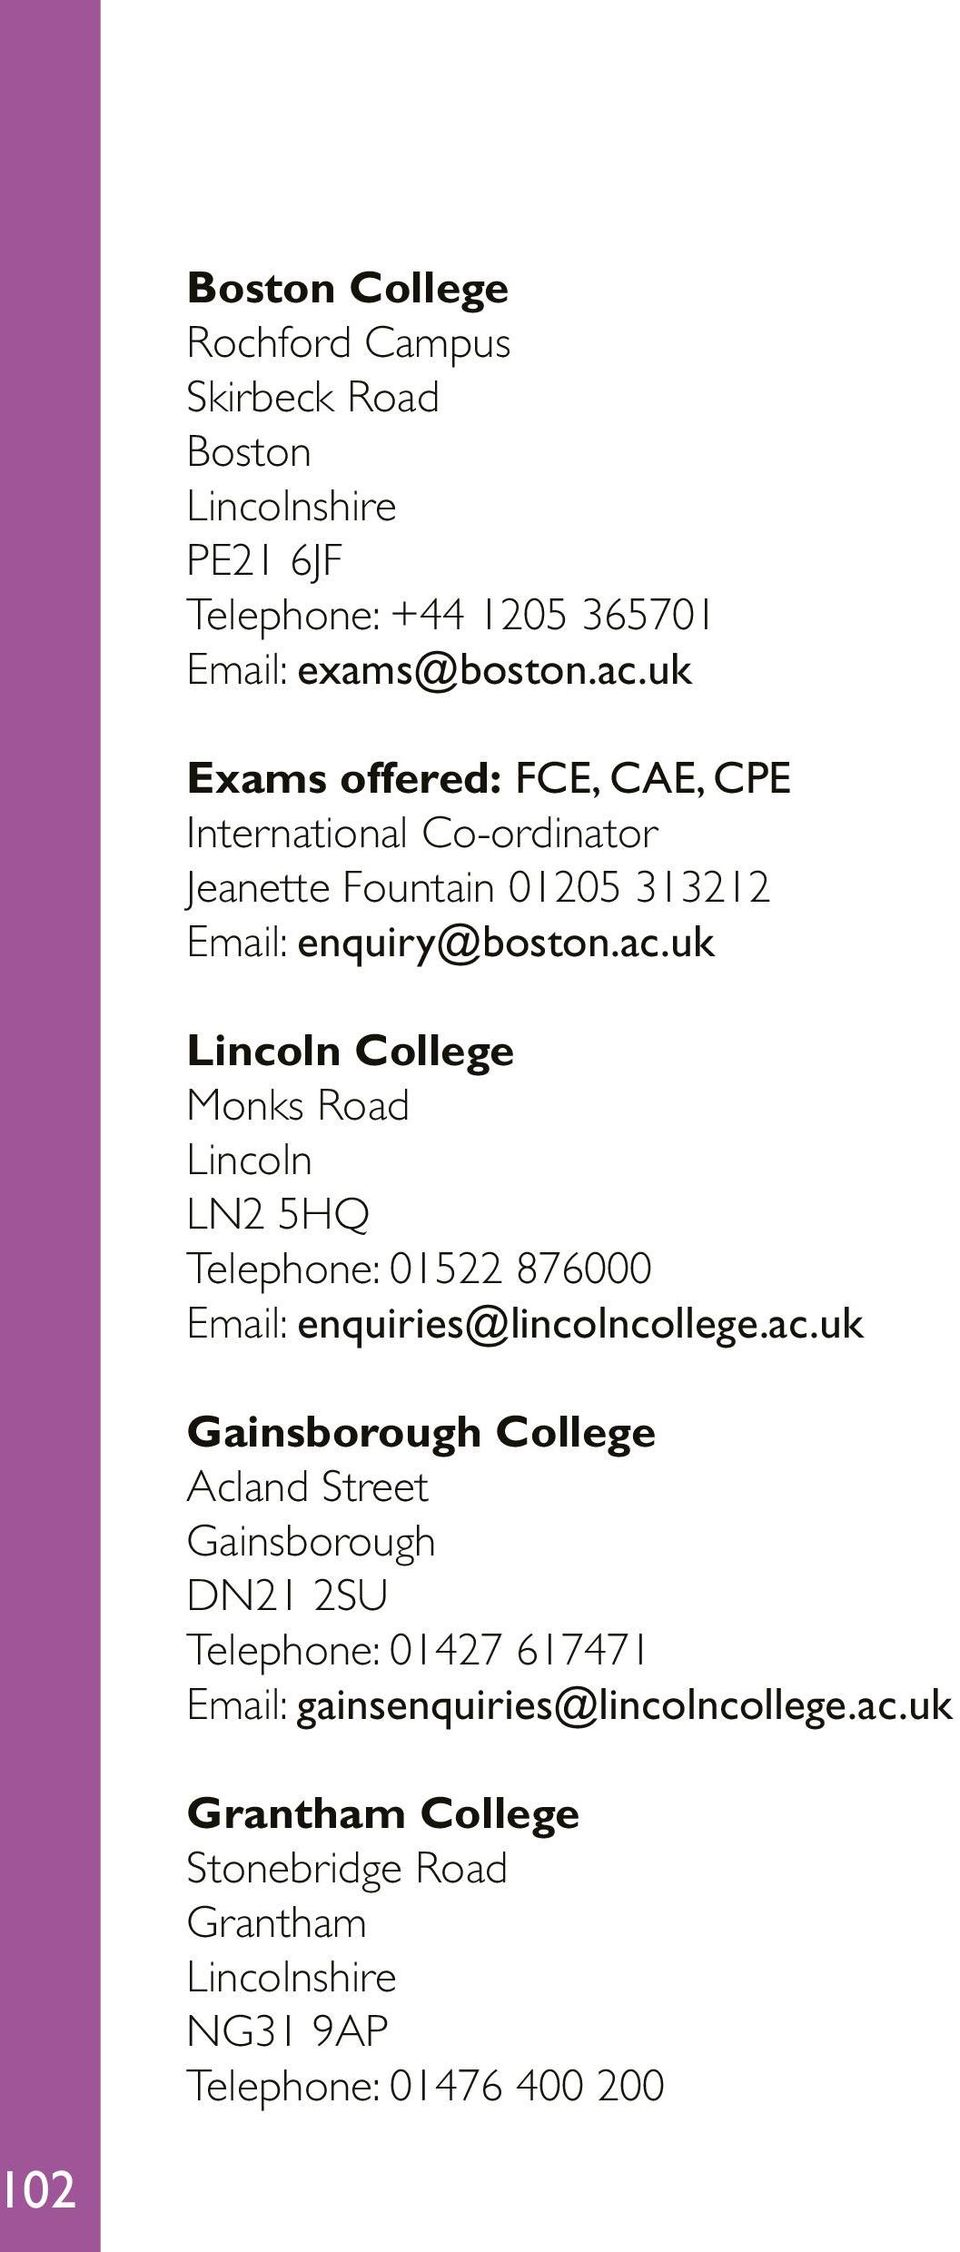 uk Lincoln College Monks Road Lincoln LN2 5HQ Telephone: 01522 876000 Email: enquiries@lincolncollege.ac.